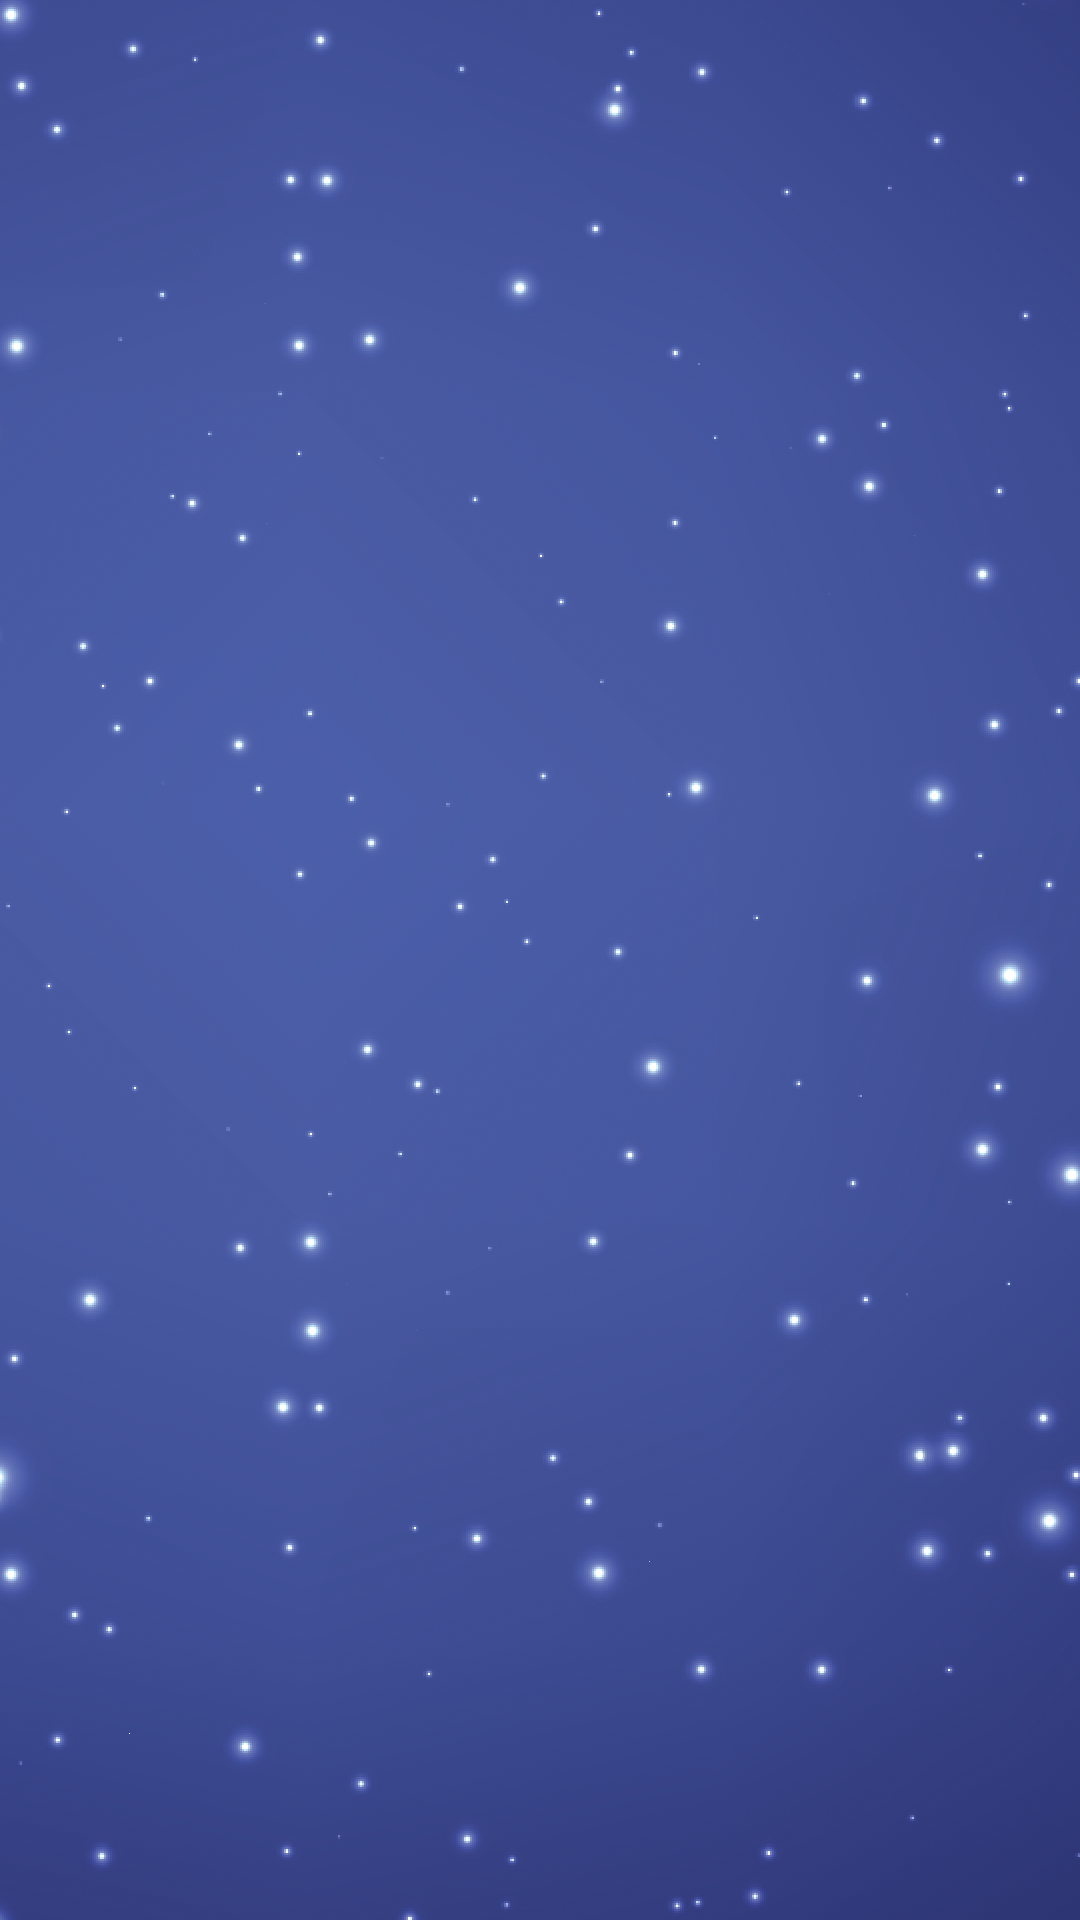 download our hd blue stars wallpaper for android phones 0335